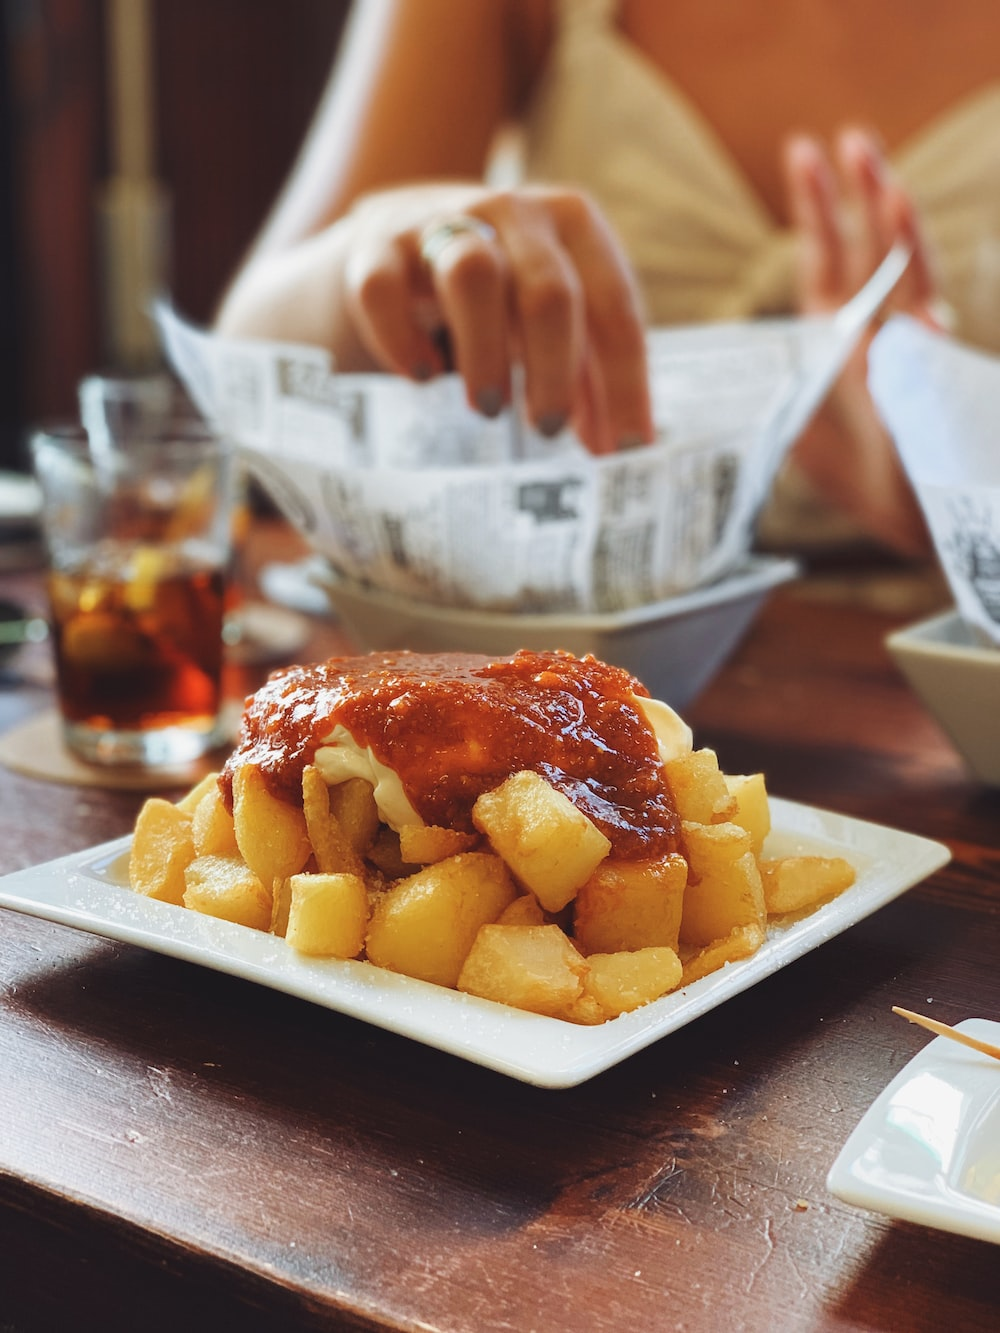 fried food with sauce